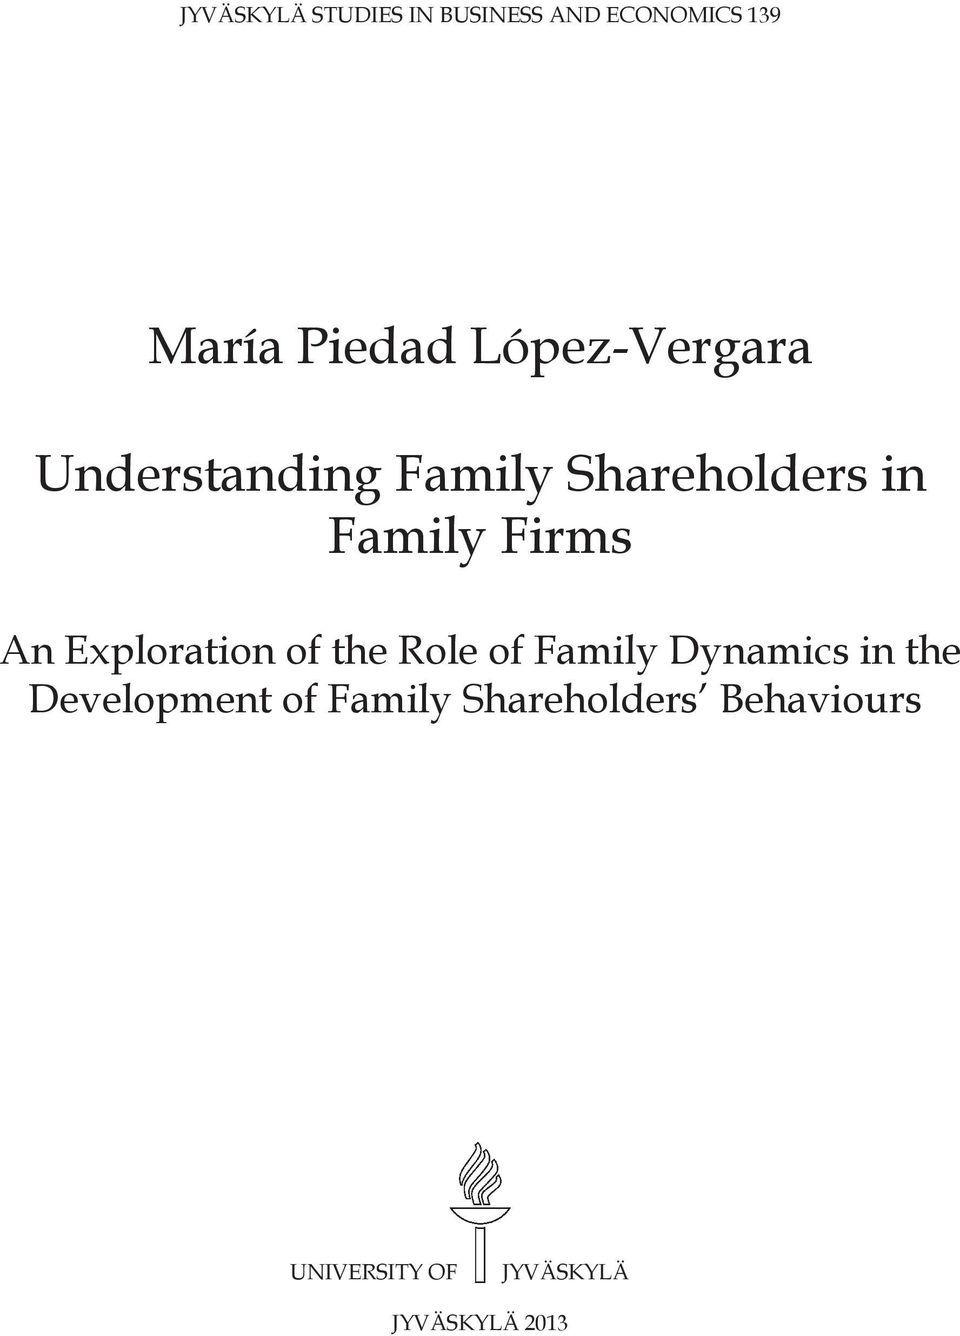 An Exploration of the Role of Family Dynamics in the Development